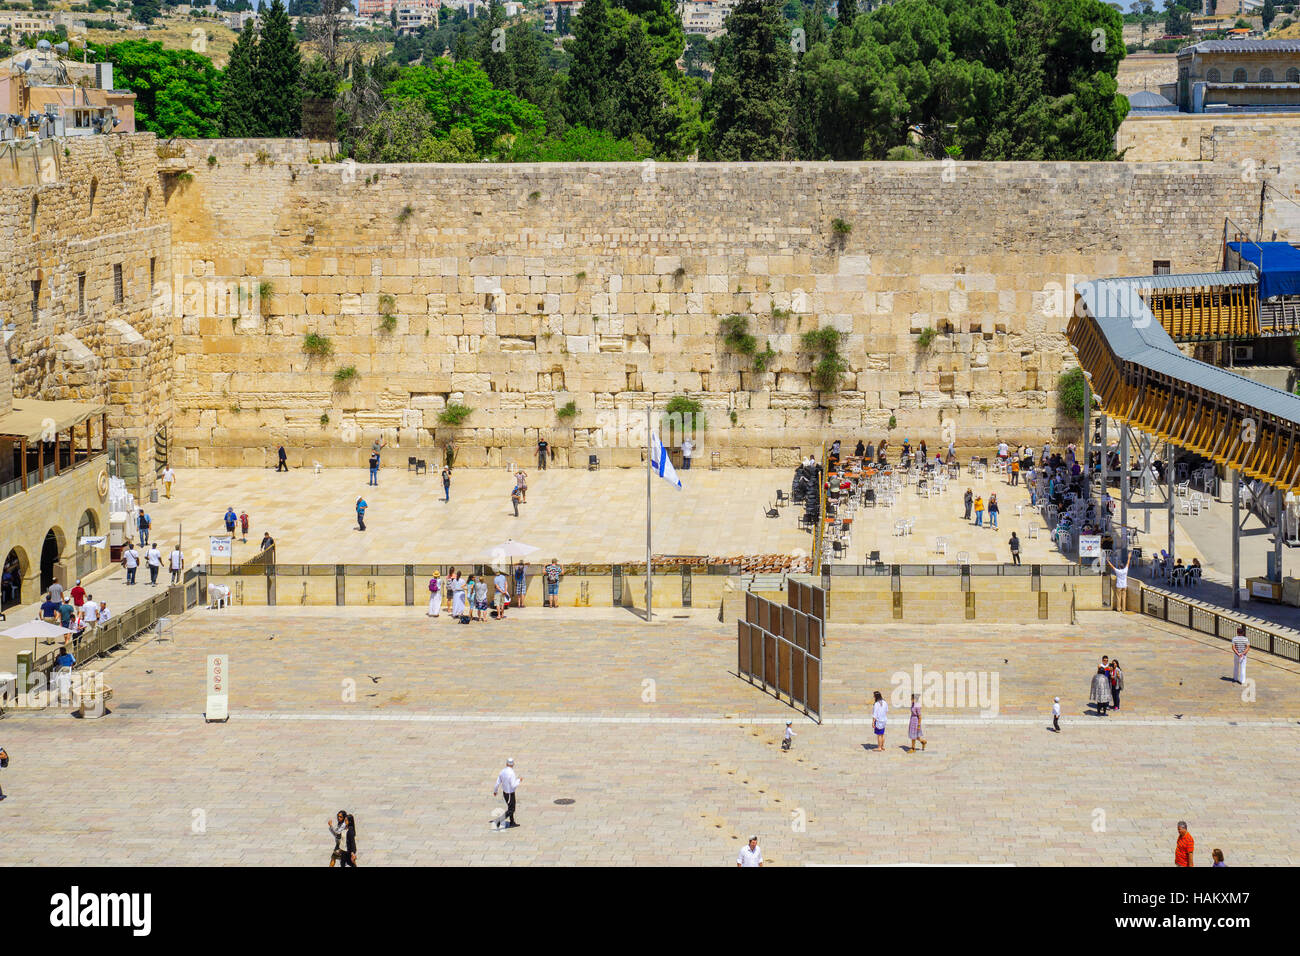 JERUSALEM, ISRAEL - APRIL 29, 2016: View of the western wall (Wailing Wall), with locals and visitors.  The old - Stock Image